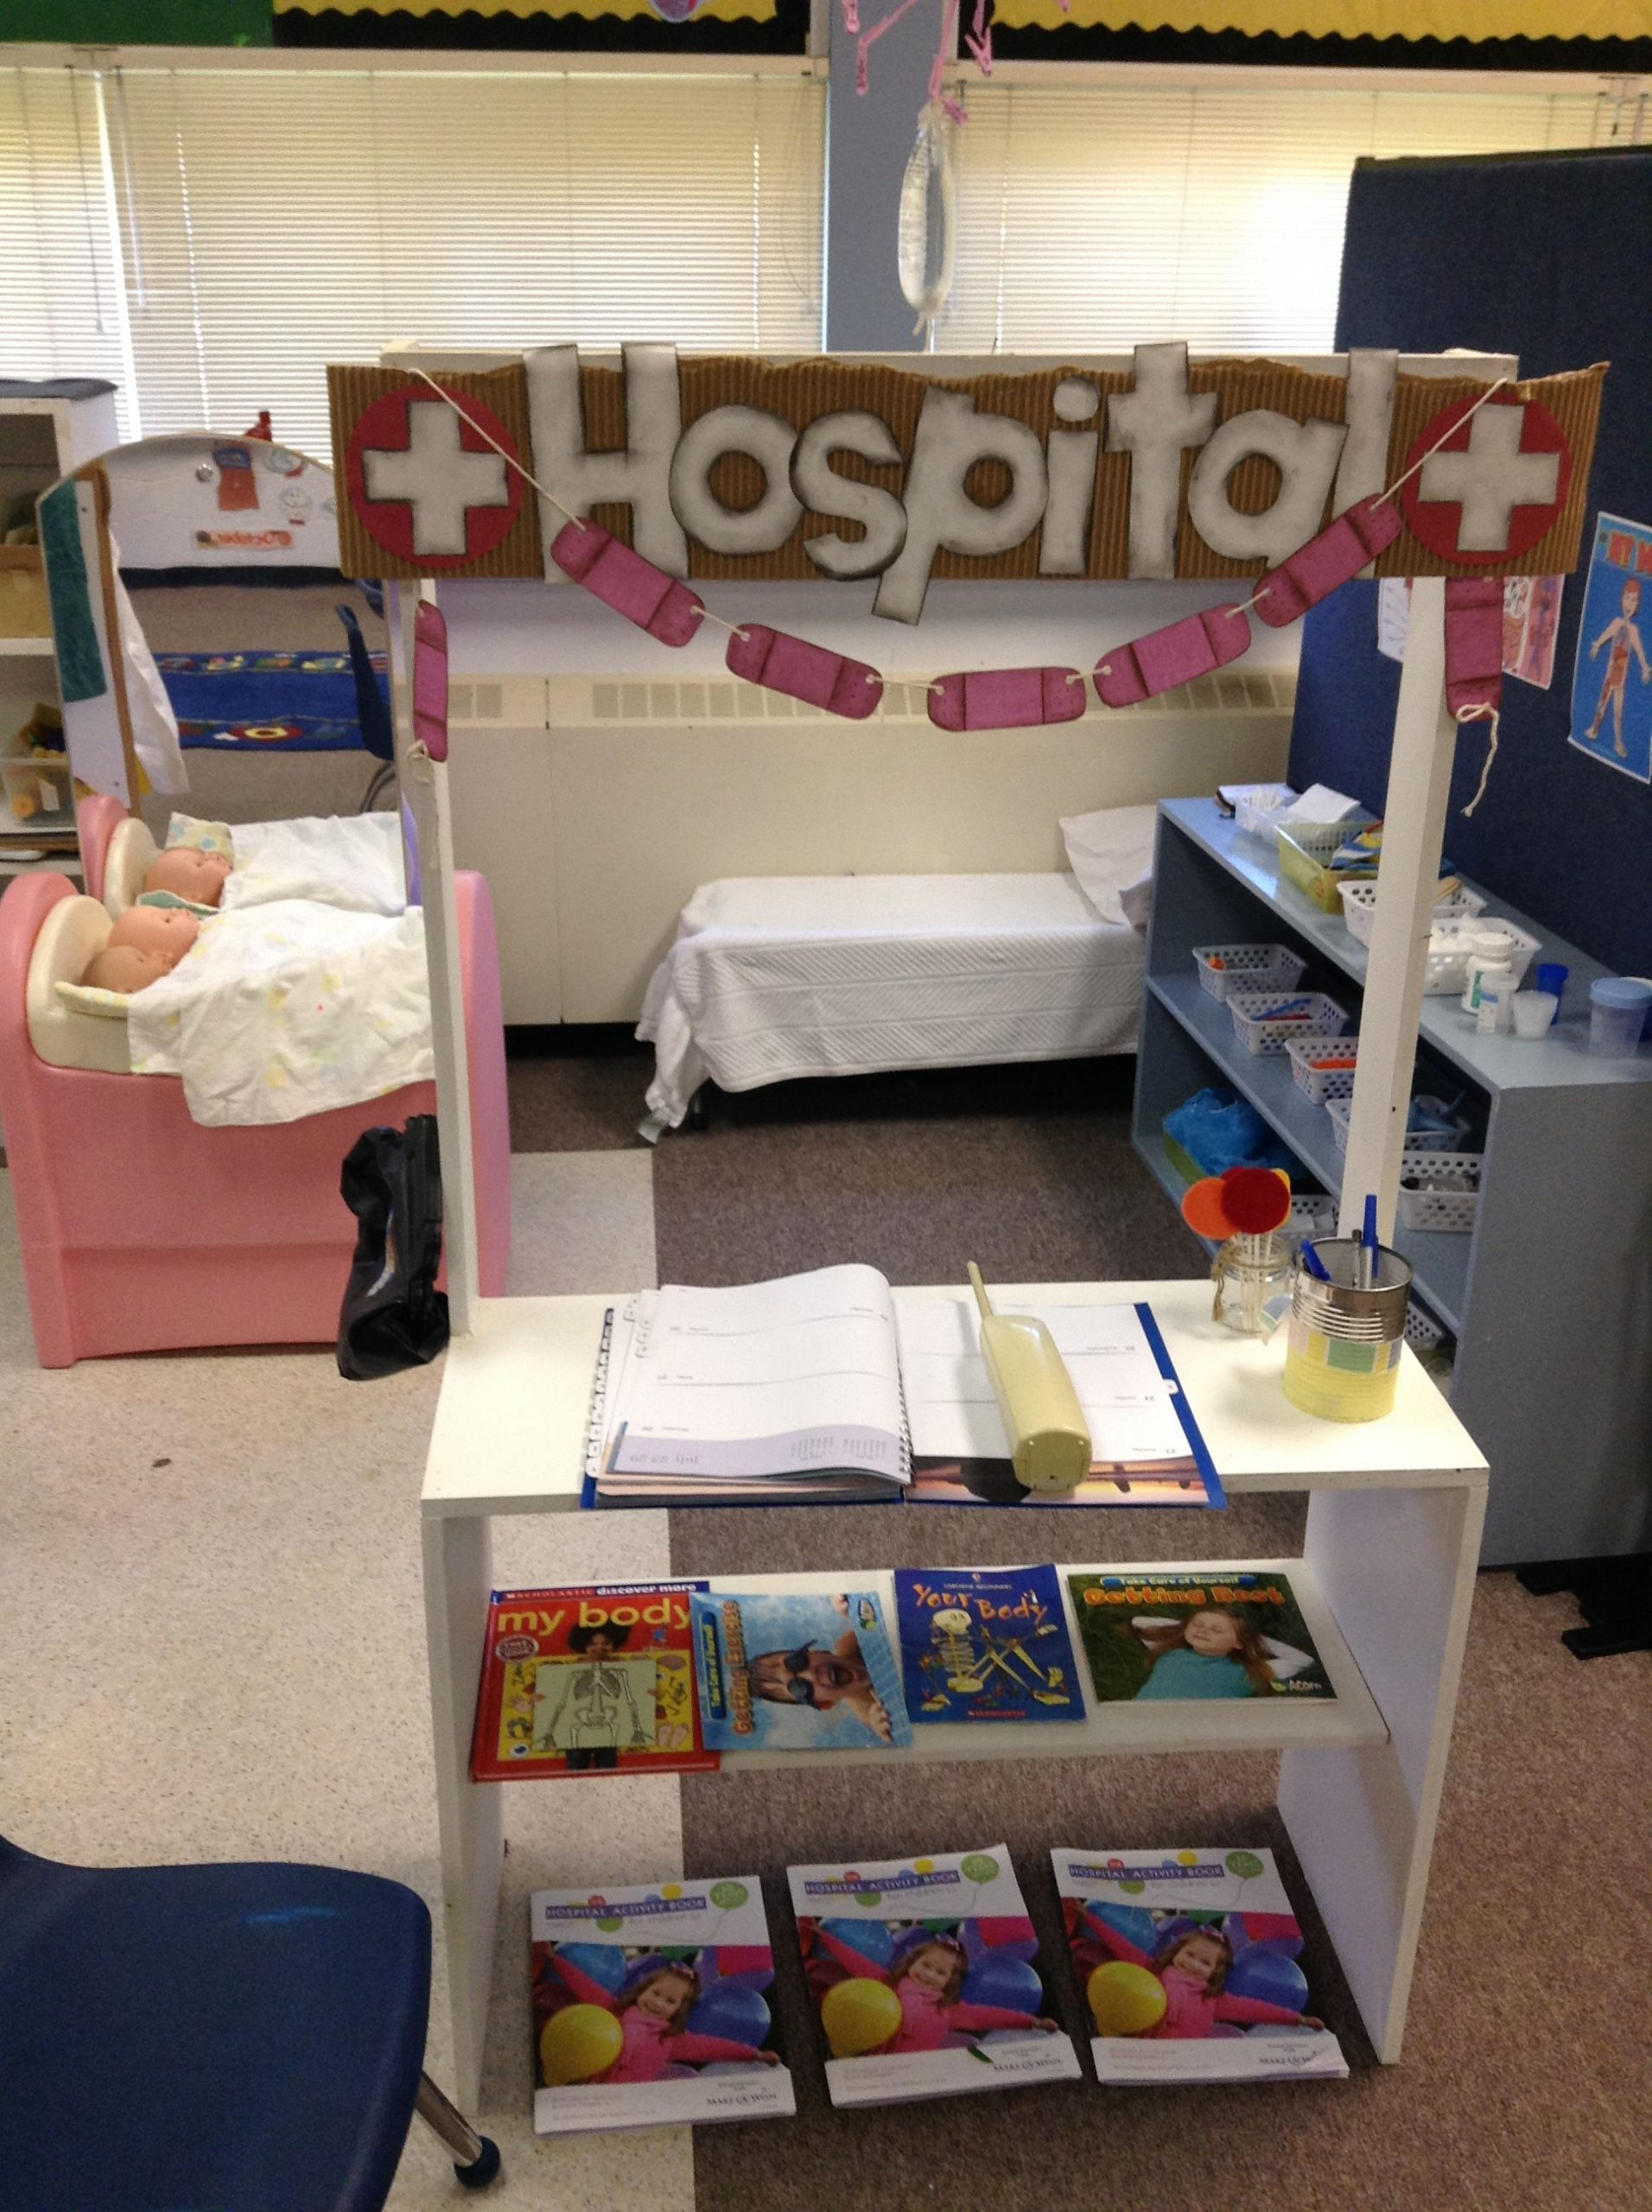 "Roles Of A Receptionist Of Our Dramatic Play area ""hospital"" is A Huge Hit the Waiting area Has some Fun Medical Activity Books for Kids and once the ""receptionist"" Has Admitted You the Doctors Have All the Latest Equipment Like Band Aids Gauze Wraps Iv Bag ""needles"" Crutches and so Much More the Best is the "" Lipop"" at the End Of Your Visit"